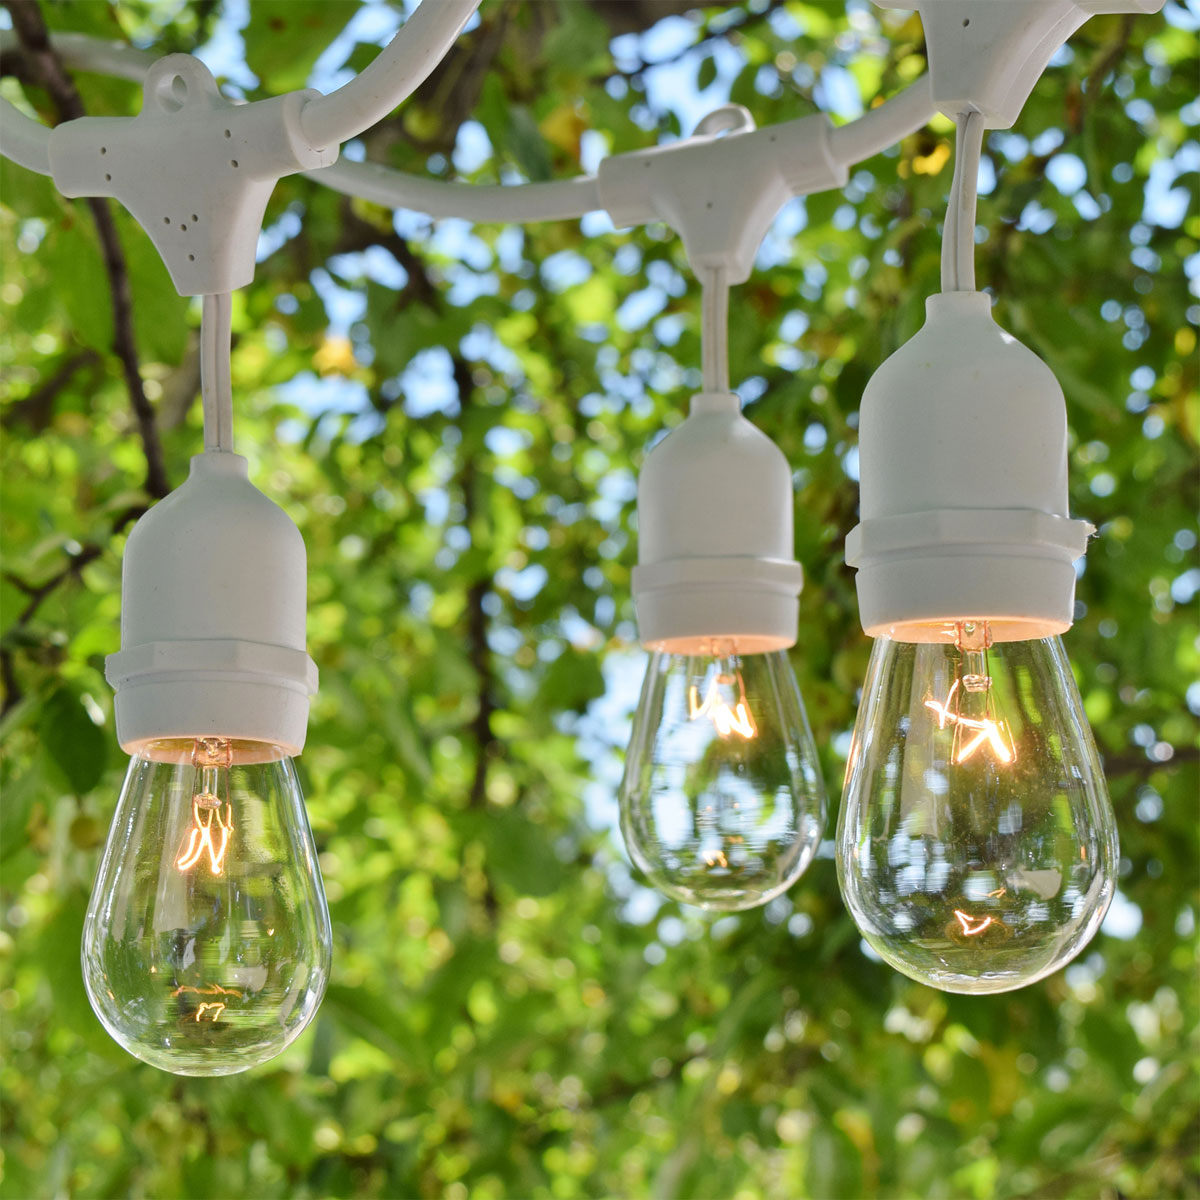 Delightful 48u0027 Outdoor String Lights Med. Base Suspended White   HD Pro Series